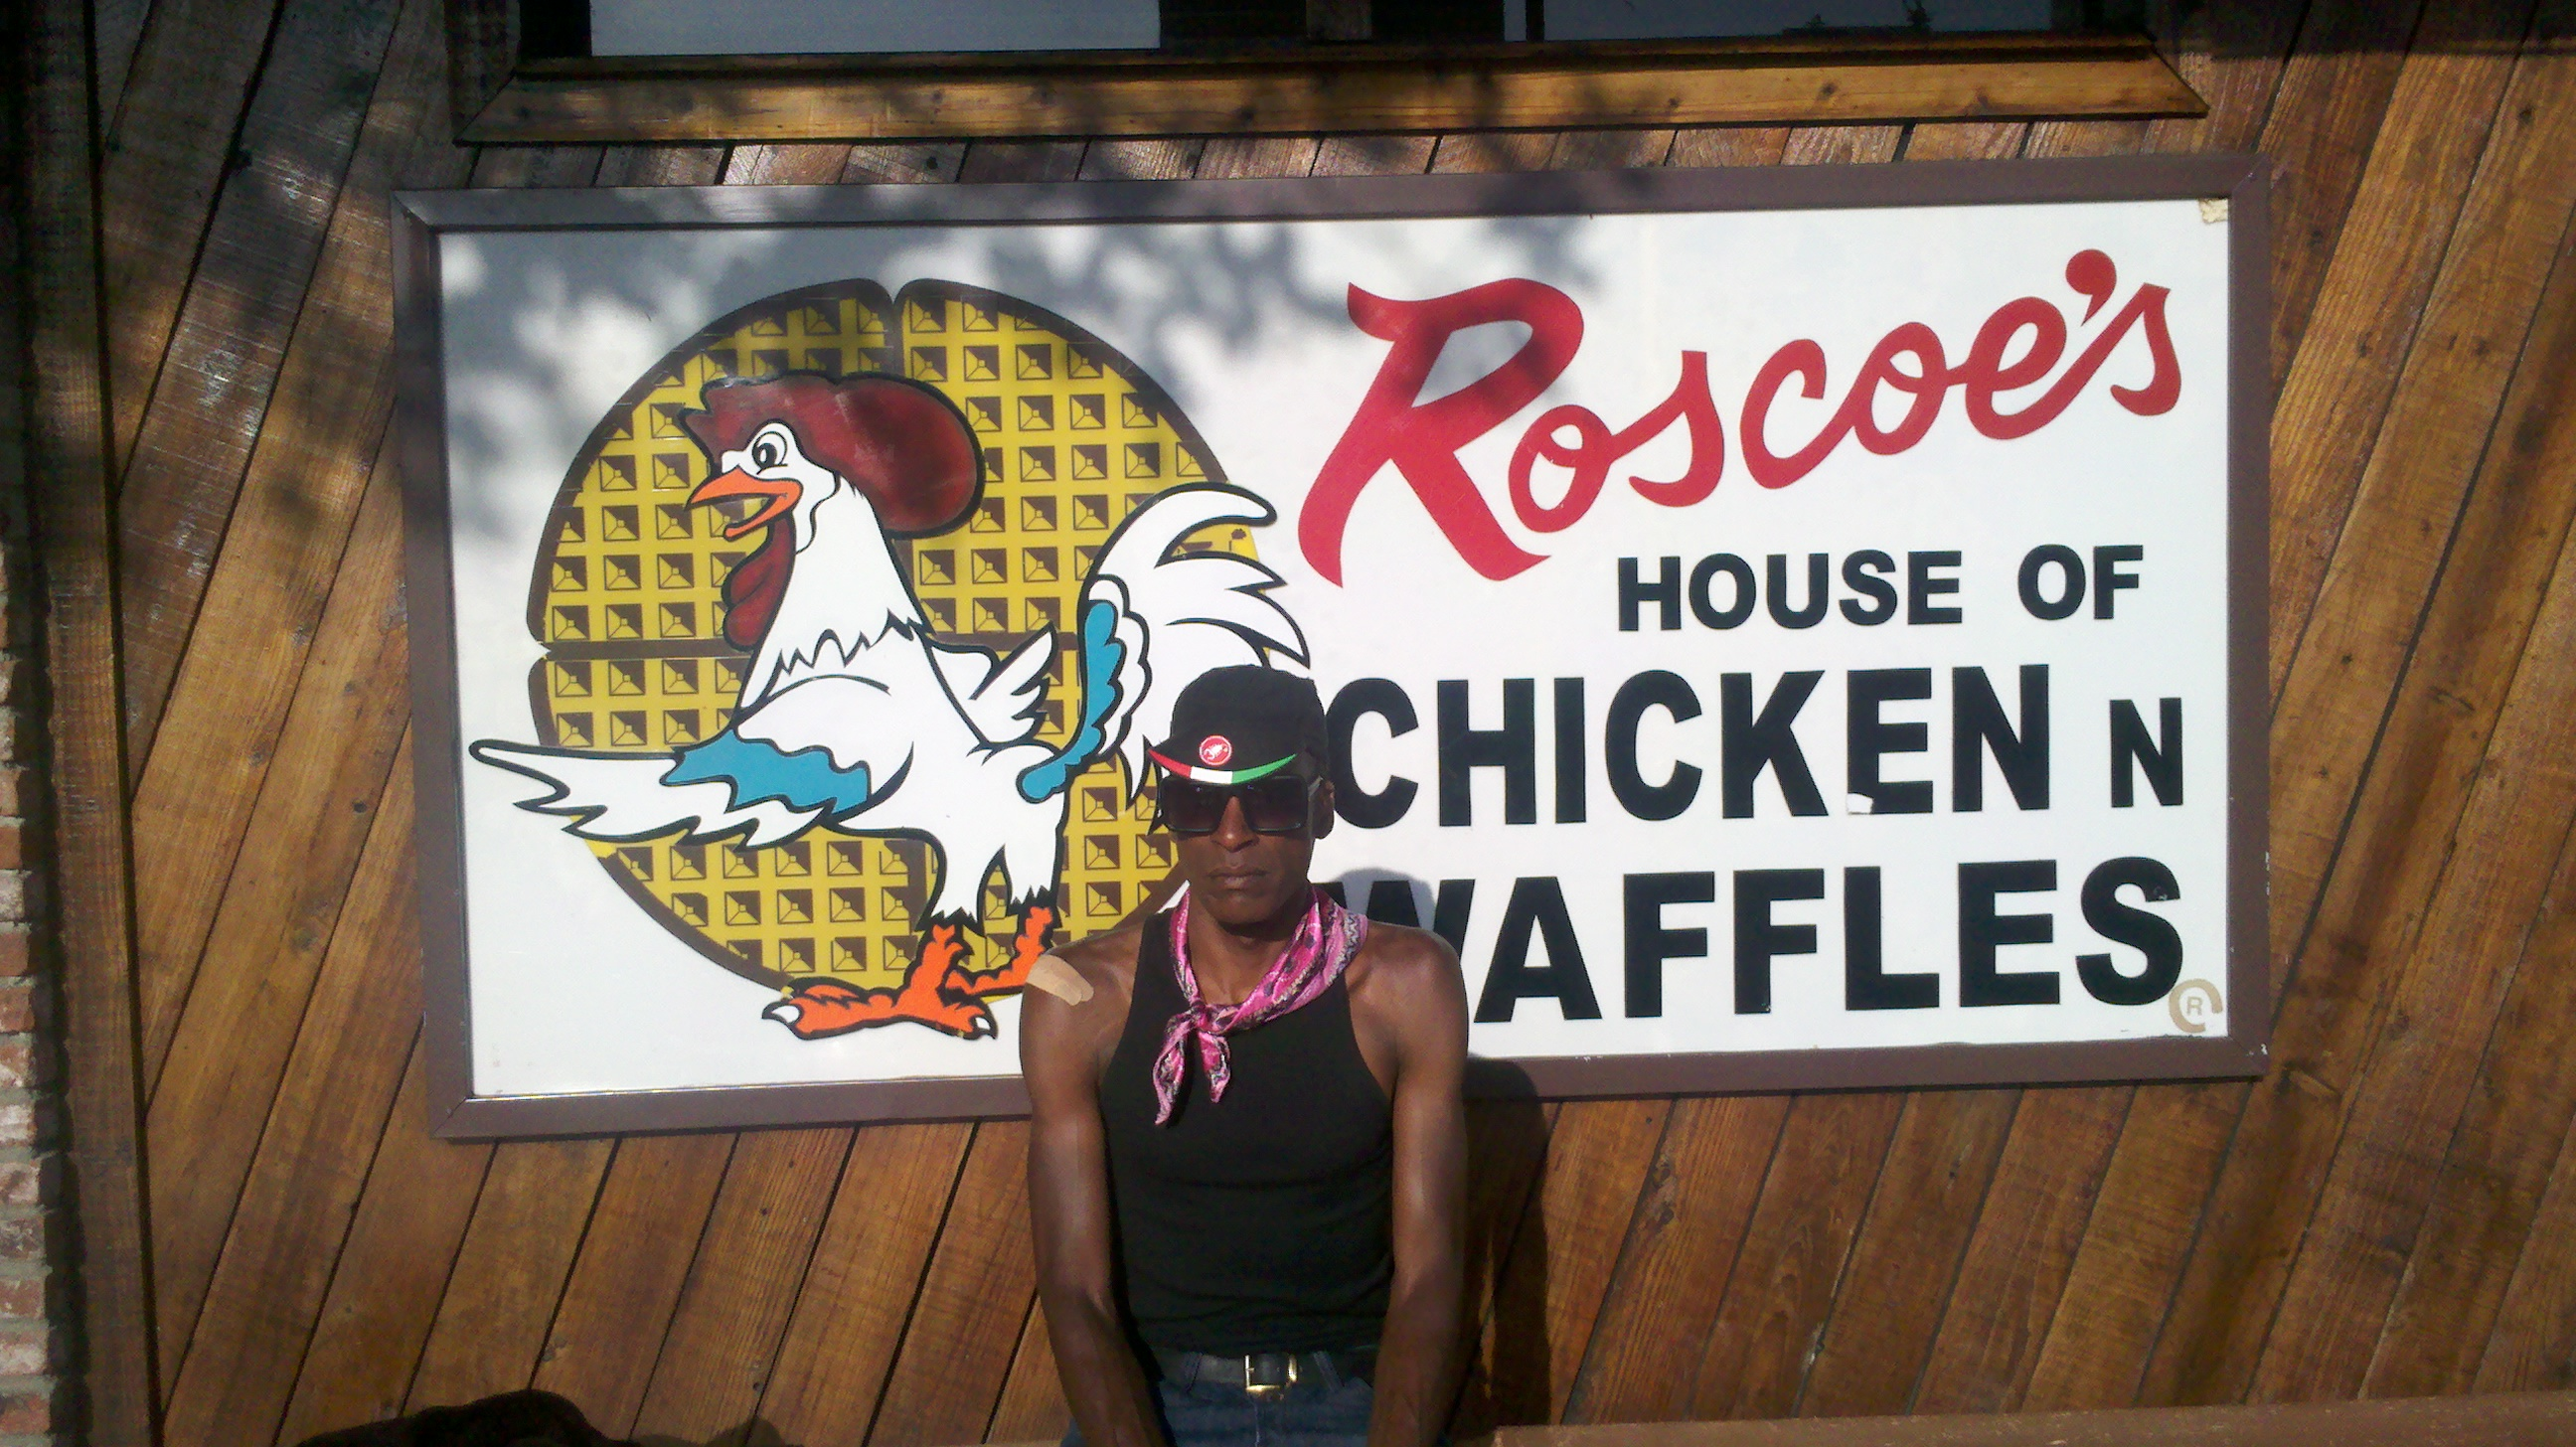 Tony Eason standing in front of Roscoe's House